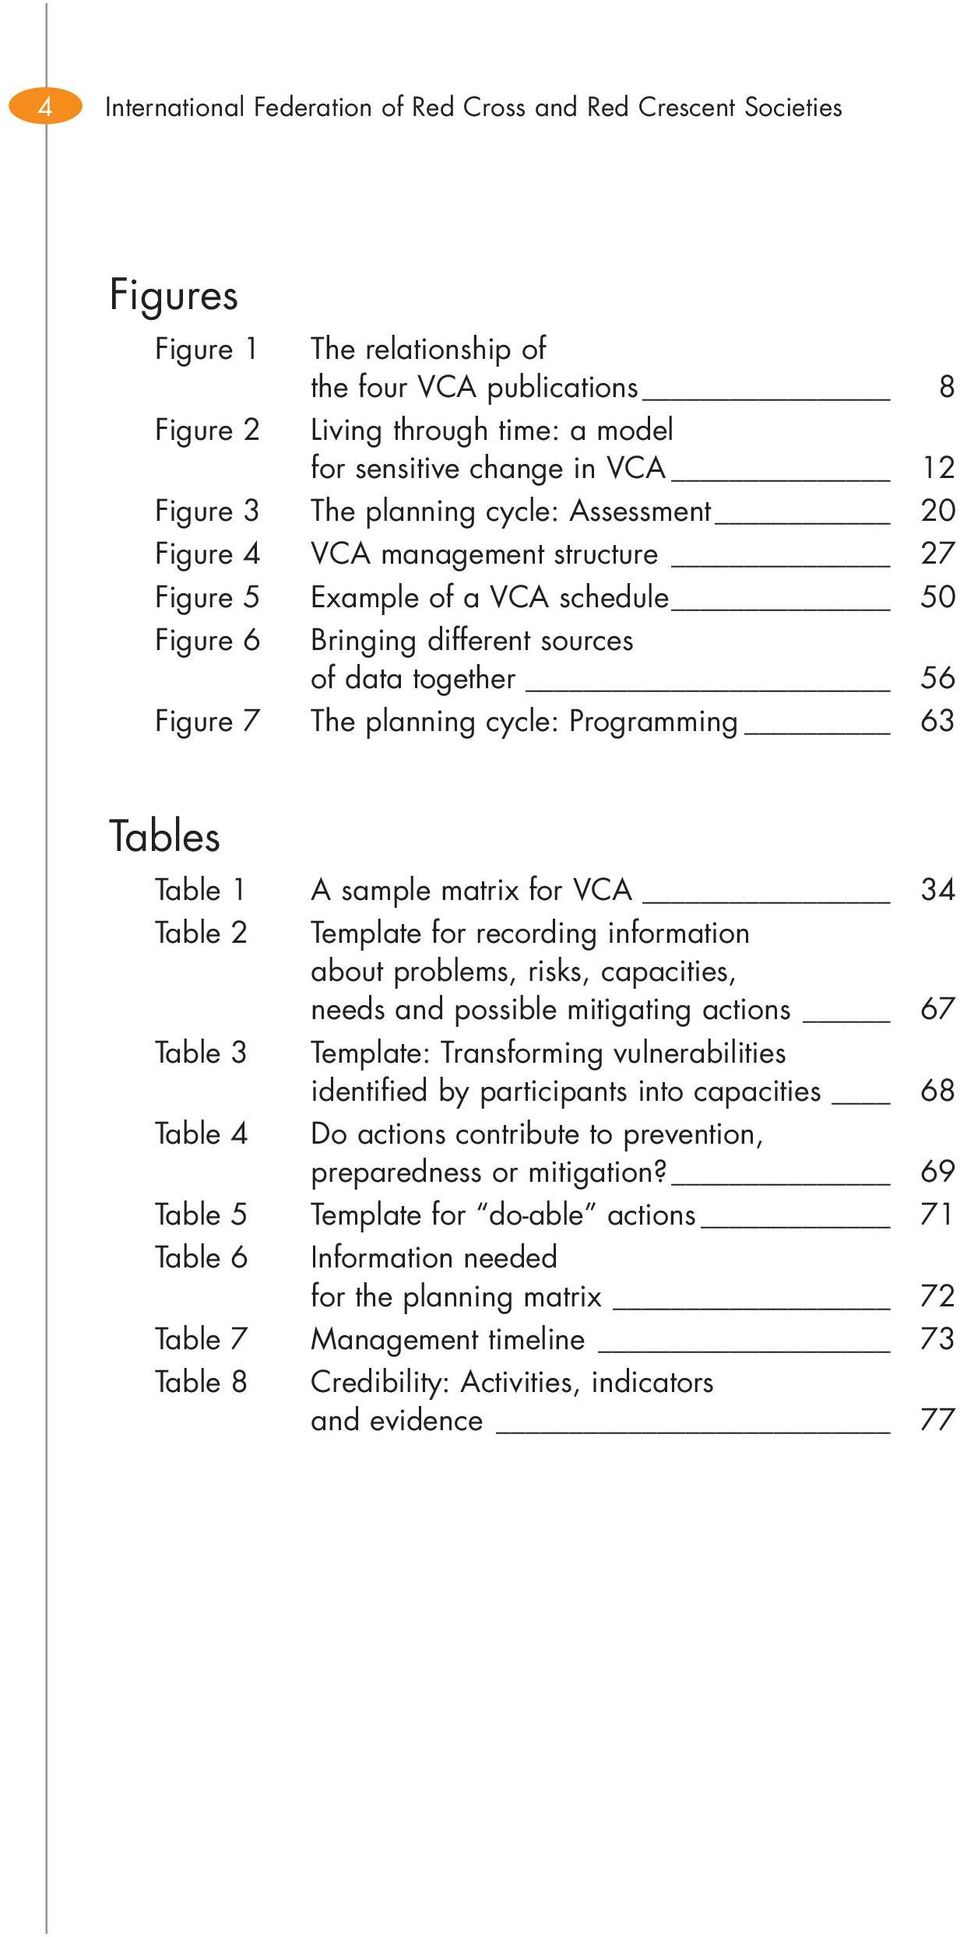 cycle: Programming 63 Tables Table 1 A sample matrix for VCA 34 Table 2 Template for recording information about problems, risks, capacities, needs and possible mitigating actions 67 Table 3